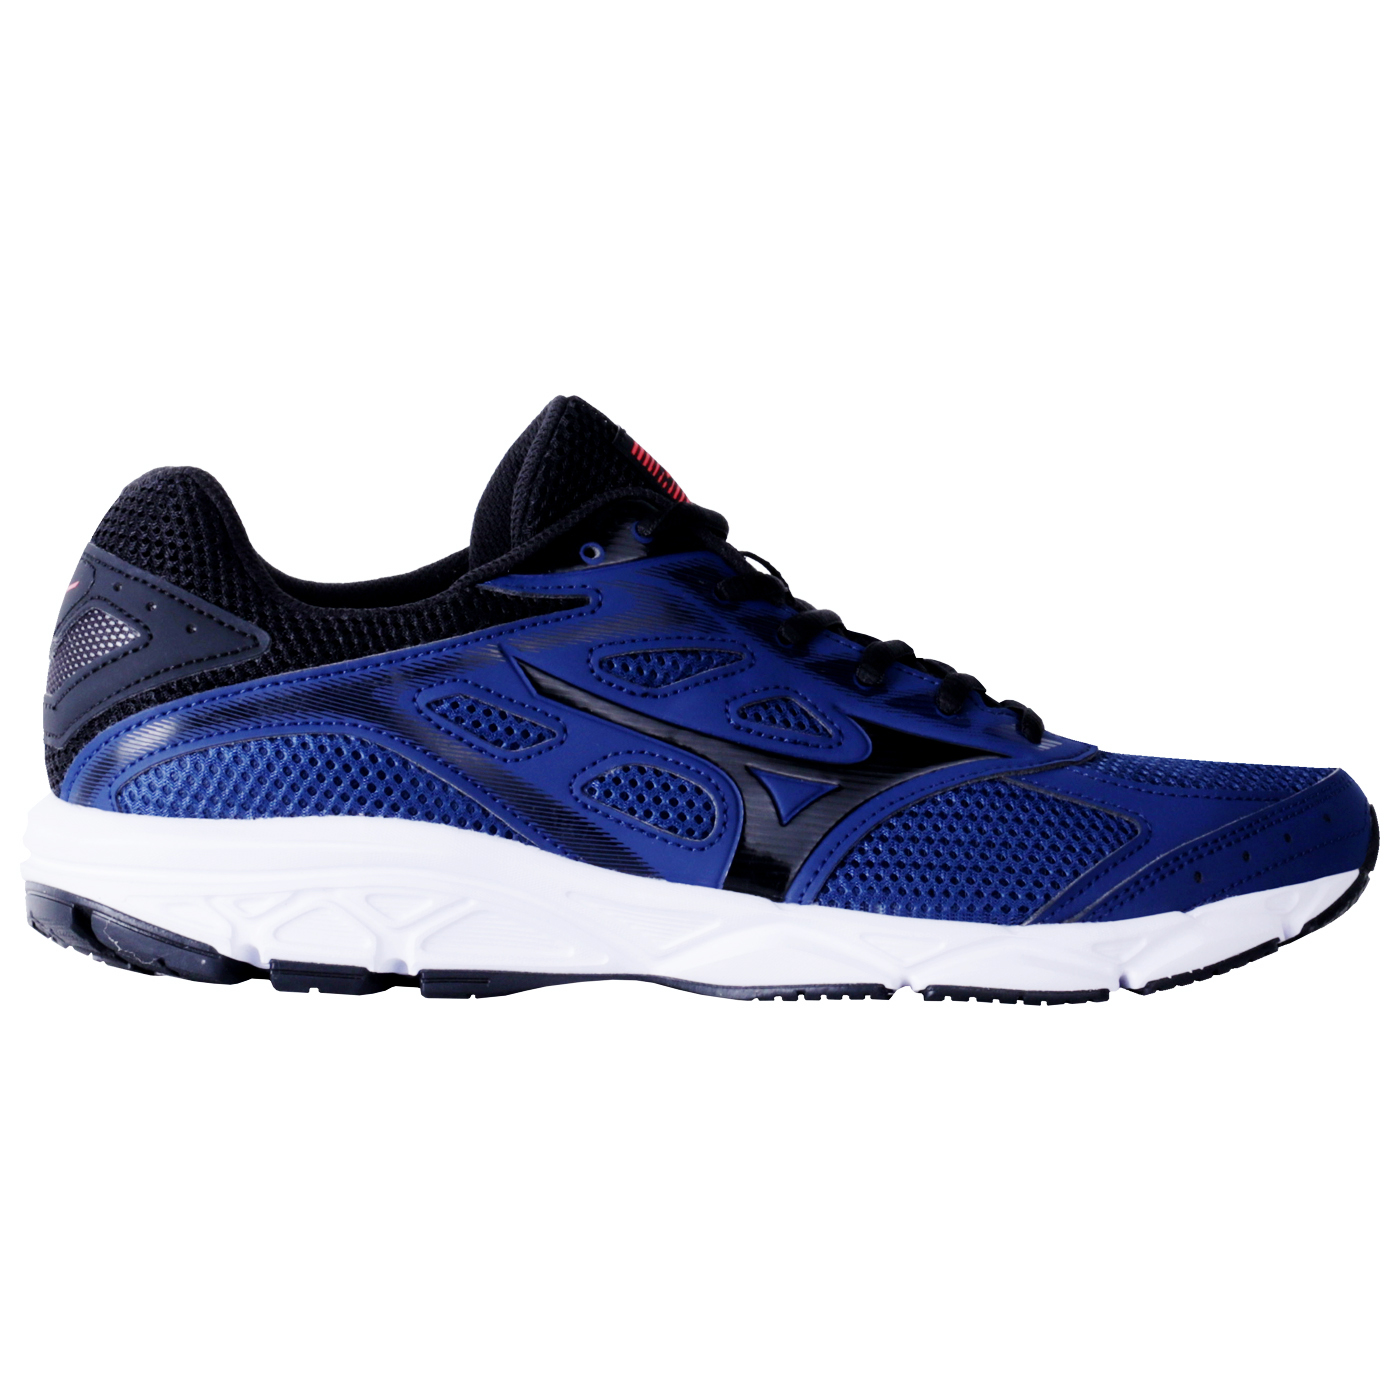 MIZUNO SPARK 4 - ESTATE BLUE/BLACK/TOMATO